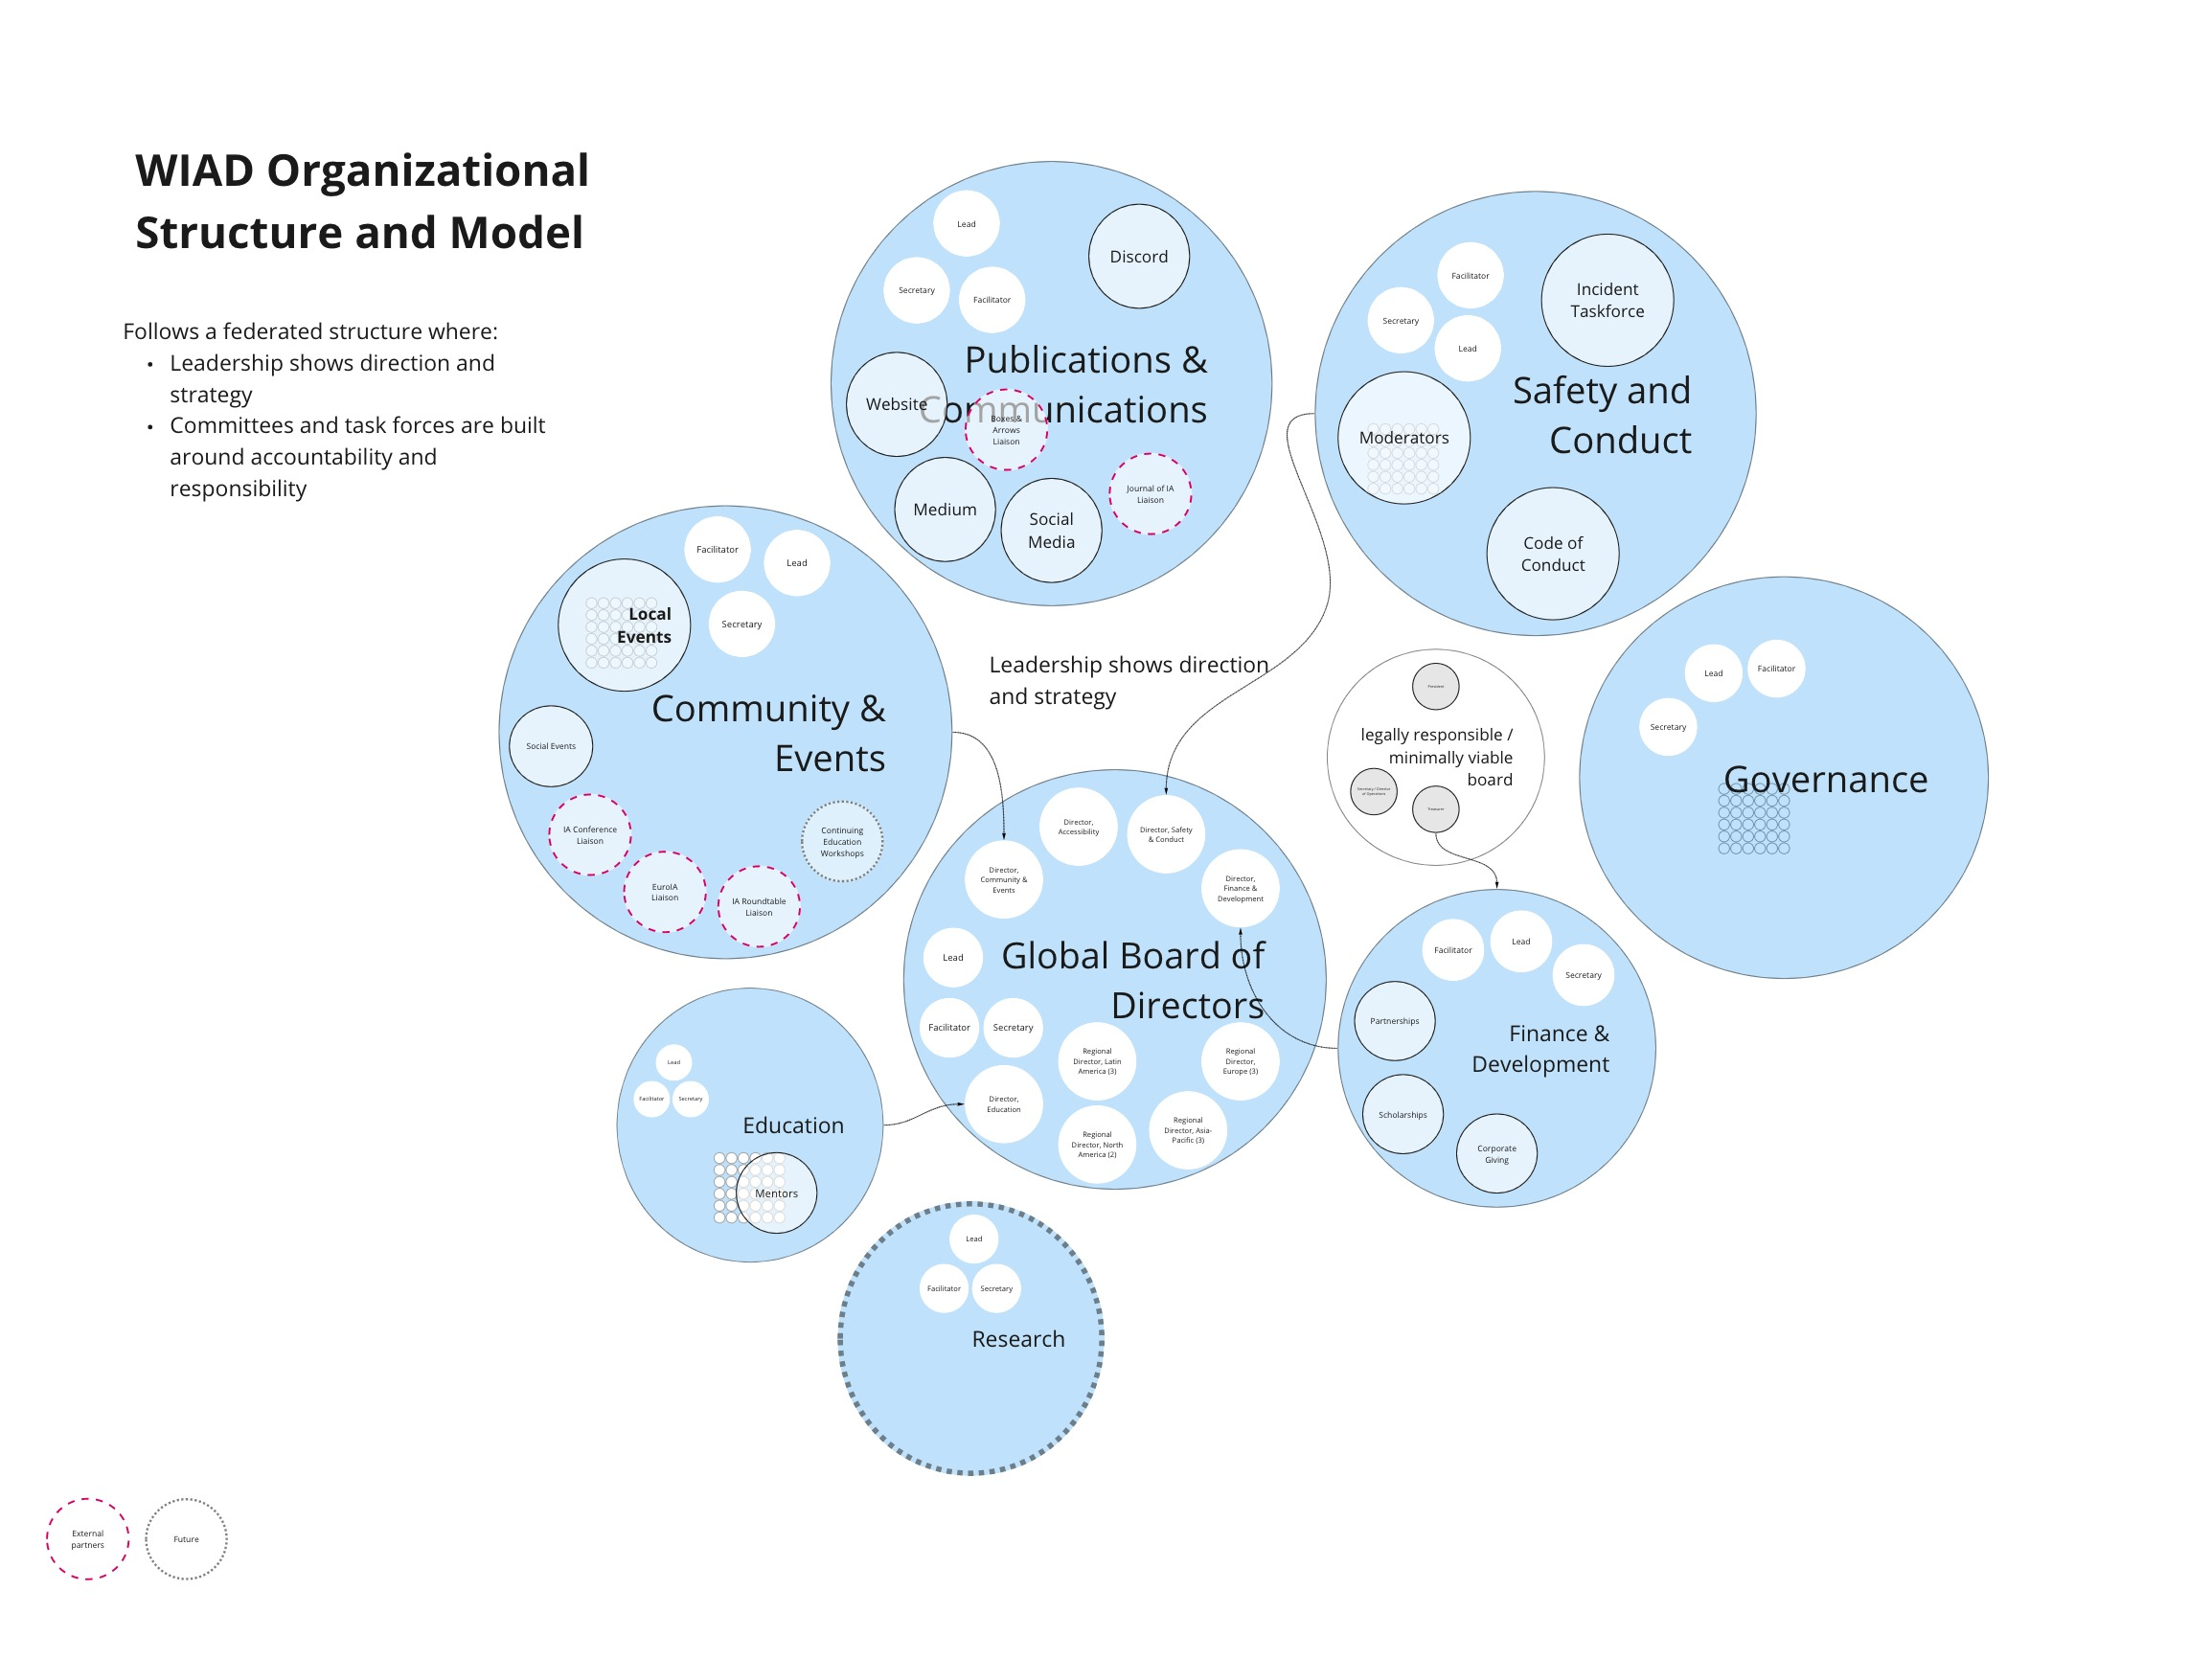 WIAD Organizational Structure Governance Model, tentative as of Jul 2020